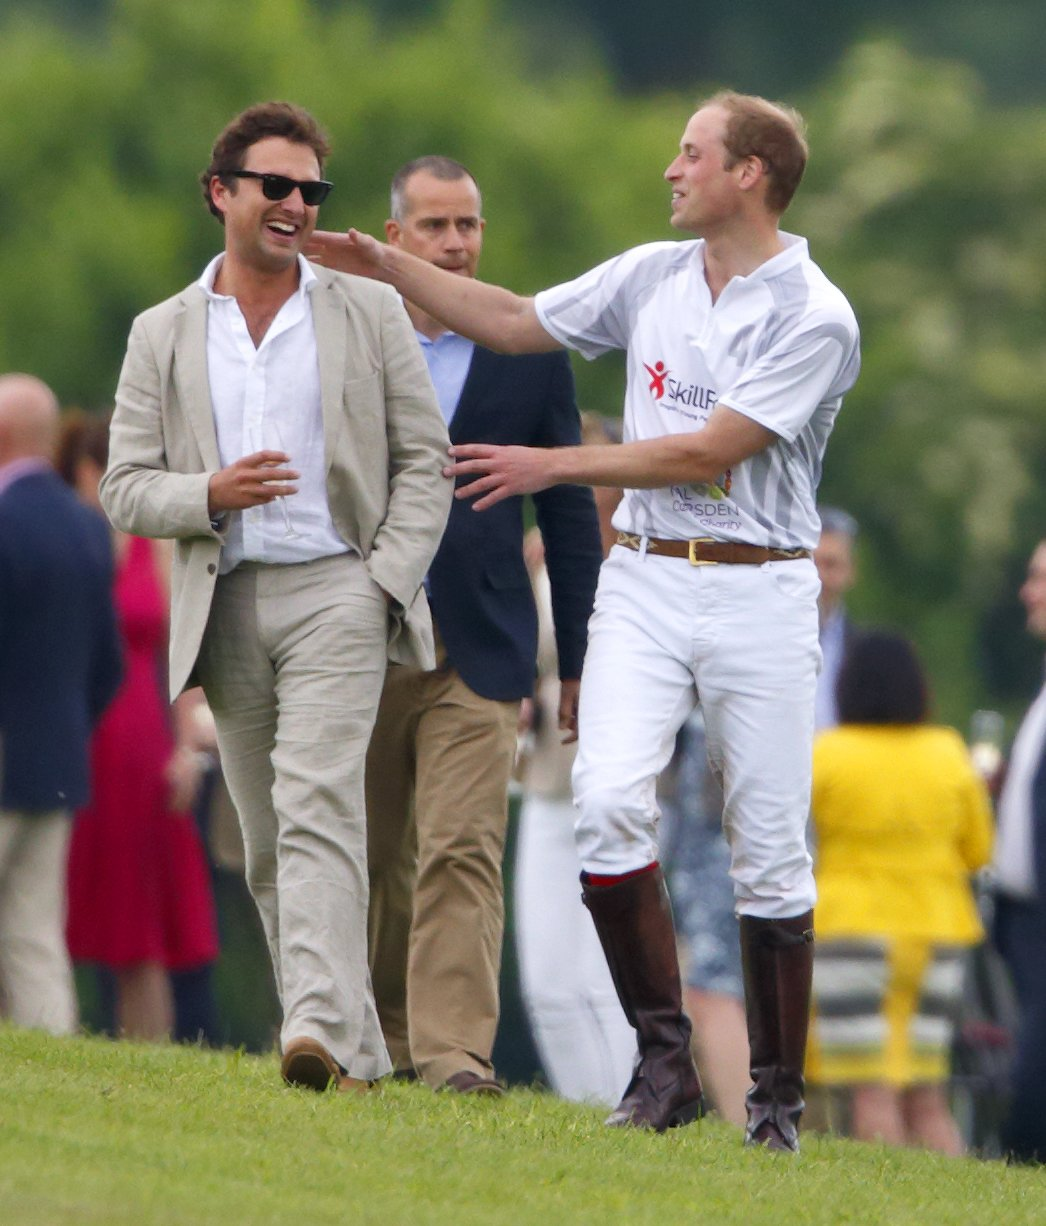 Prince Williams with Thomas van Straubenzee. | Source: Getty Images